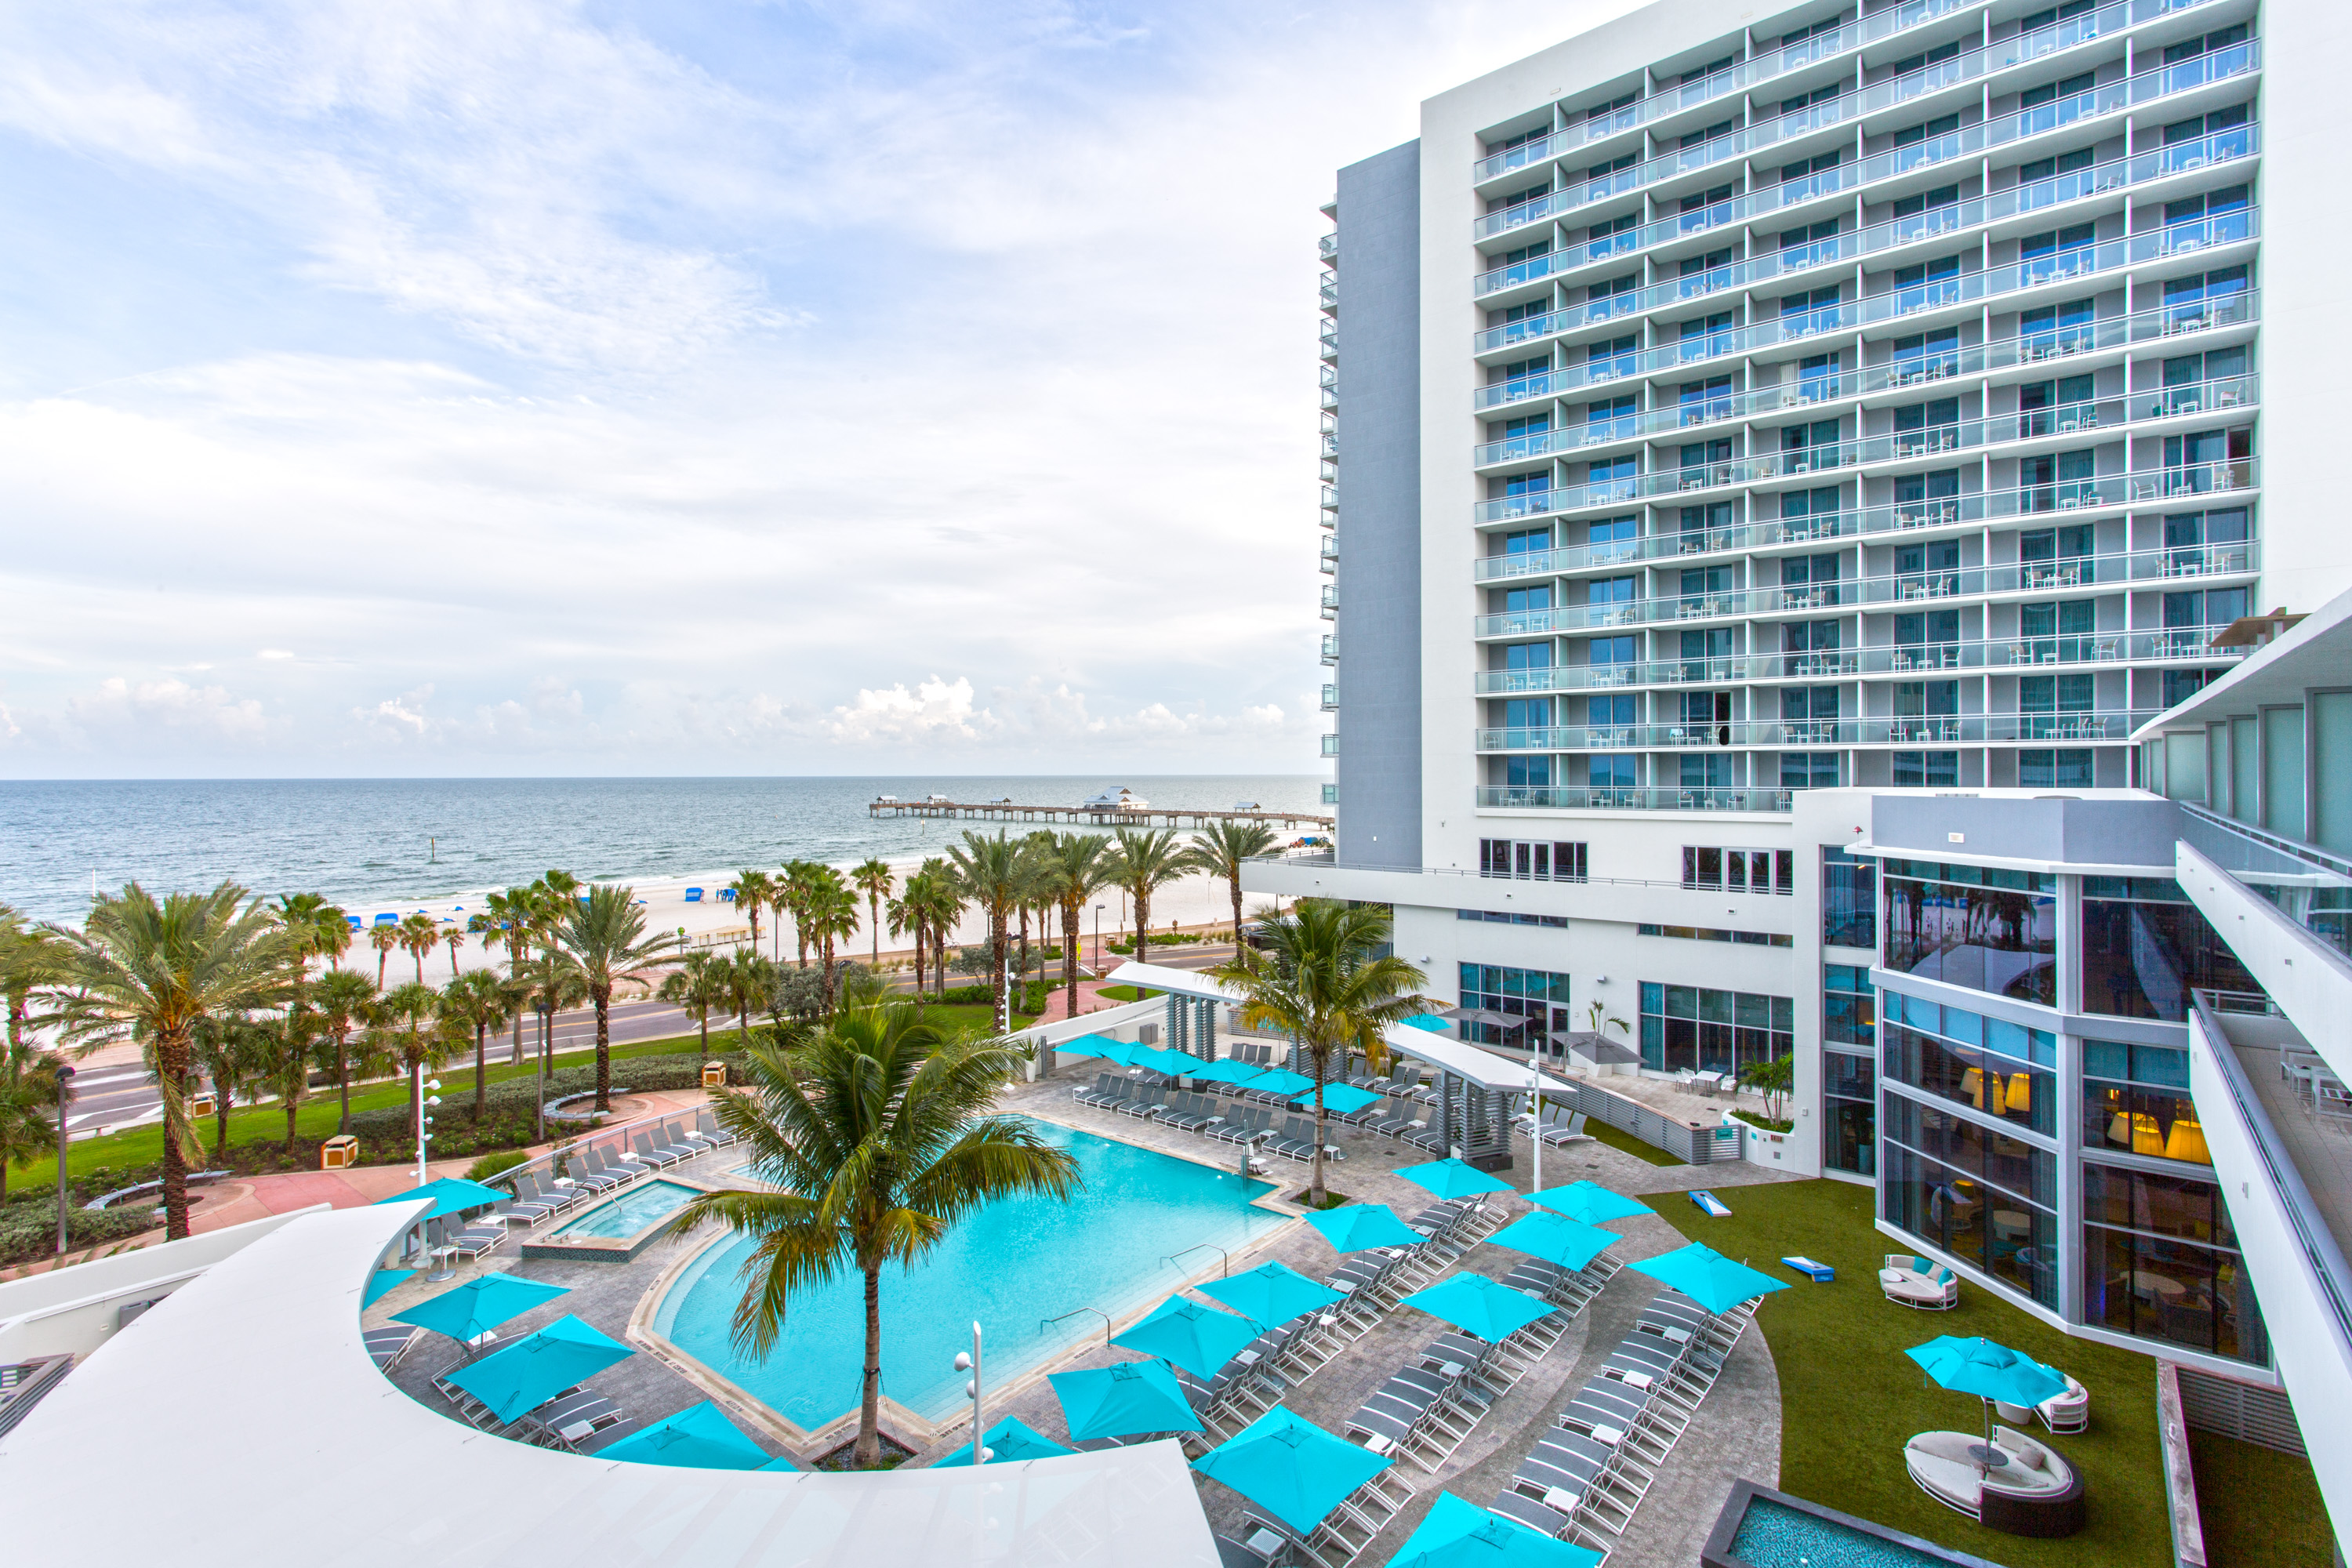 Clearwater Beach Resort 2 Bedrooms 2 bathrooms photo 18438271